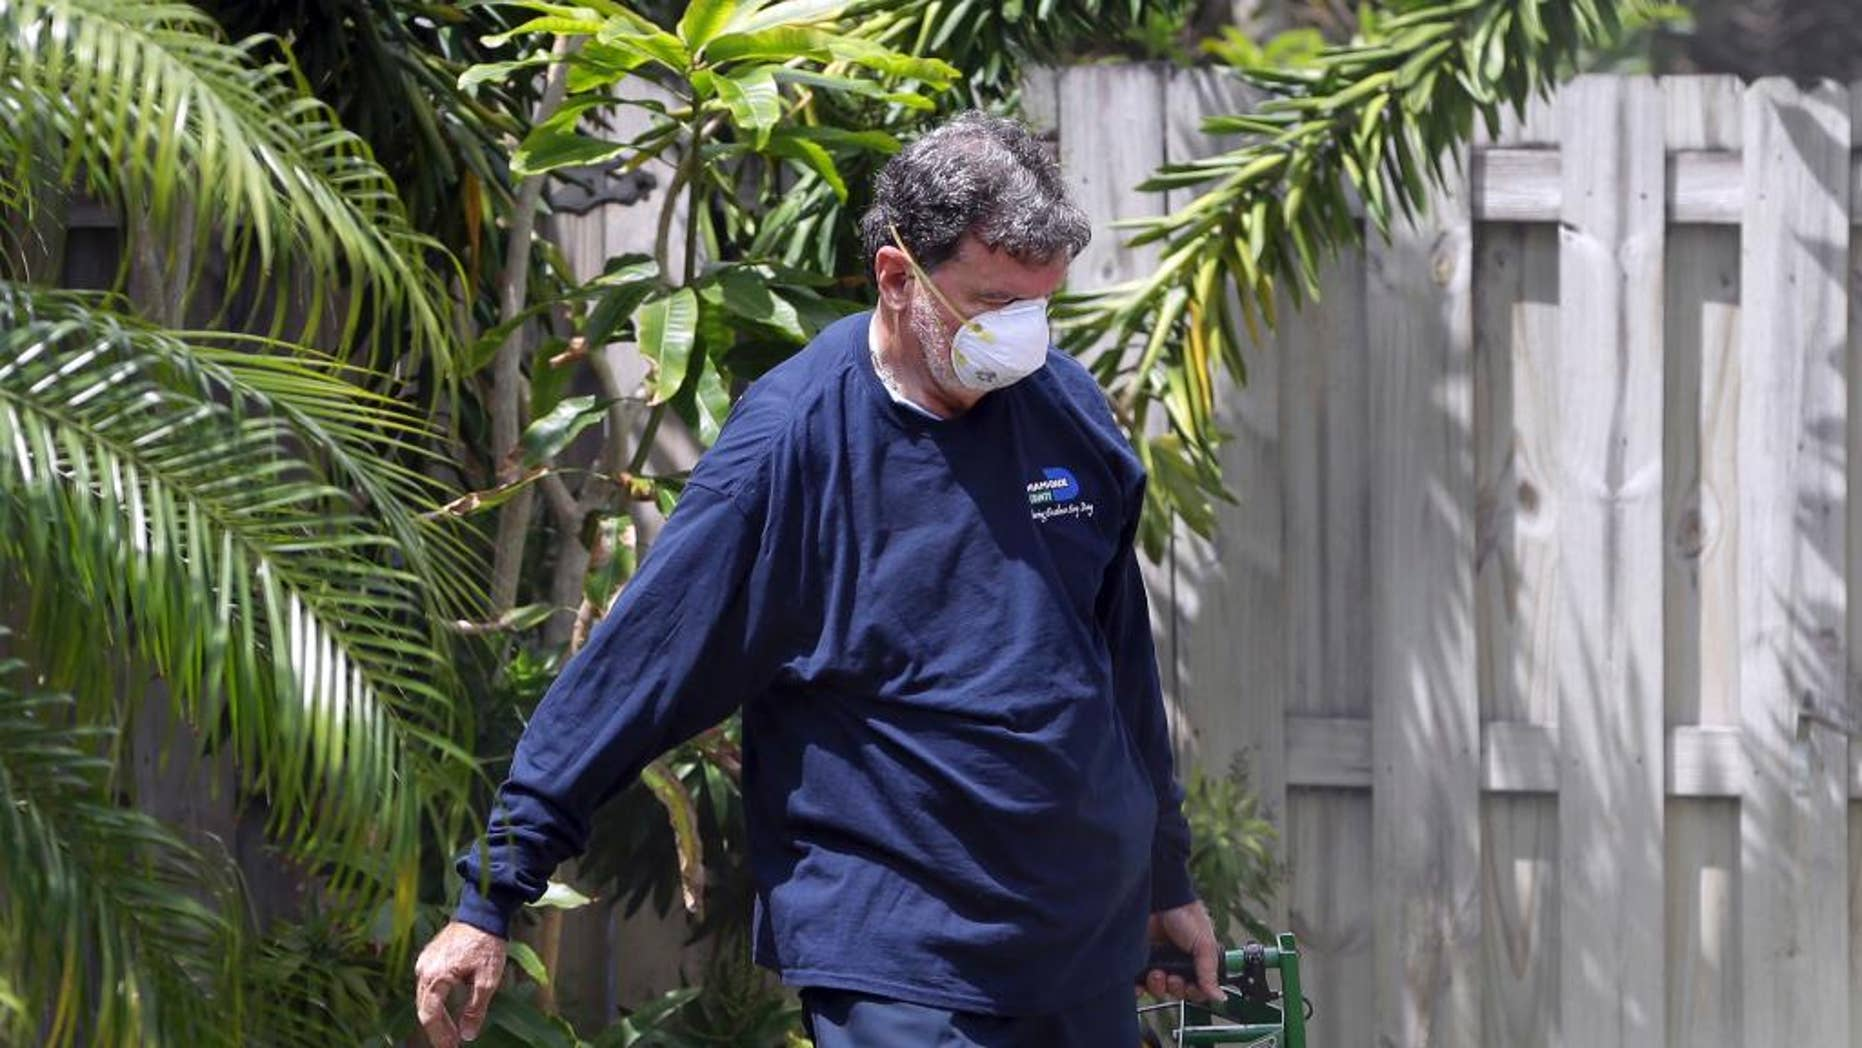 FILE - In this April 12, 2016 photo, Giraldo Carratala, an inspector with the Miami- Dade County, Fla. mosquito control unit, sprays pesticide in the yard of a home in Miami, Fla. On Tuesday, June 14, 2016, health officials announced a plan to combat Zika that includes a special team of experts that can be dispatched to states if the virus spreads in the U.S. Officials aren't expecting big outbreaks of the mosquito-borne virus like in Latin America and the Caribbean. But they do think some U.S. cases are likely as the mosquito season heats up. (AP Photo/Lynne Sladky)